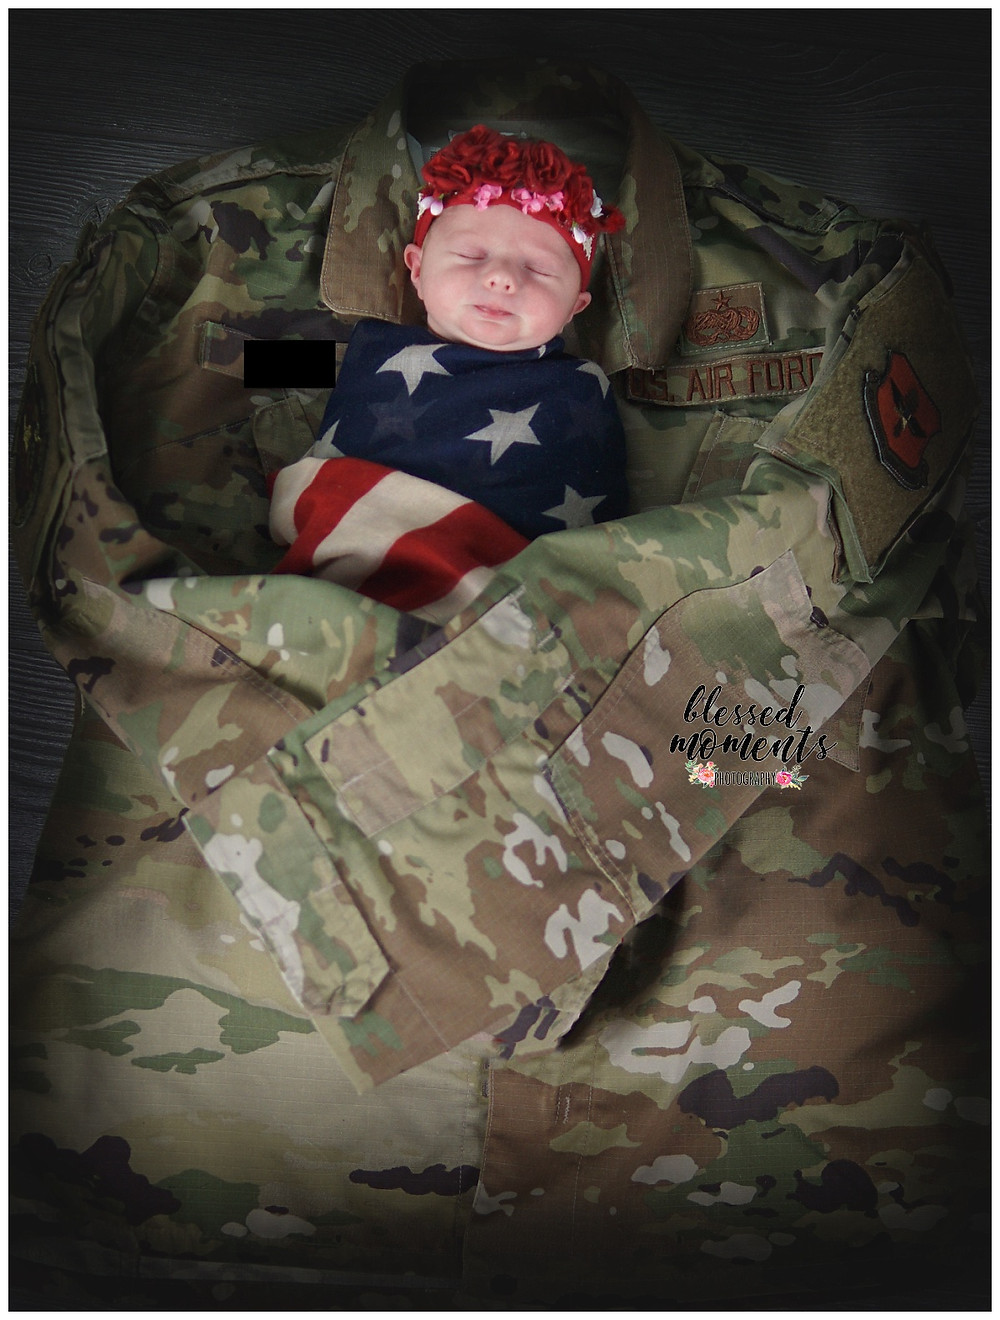 newborn baby wrapped in a flag colored scarf and laying in a military uniform